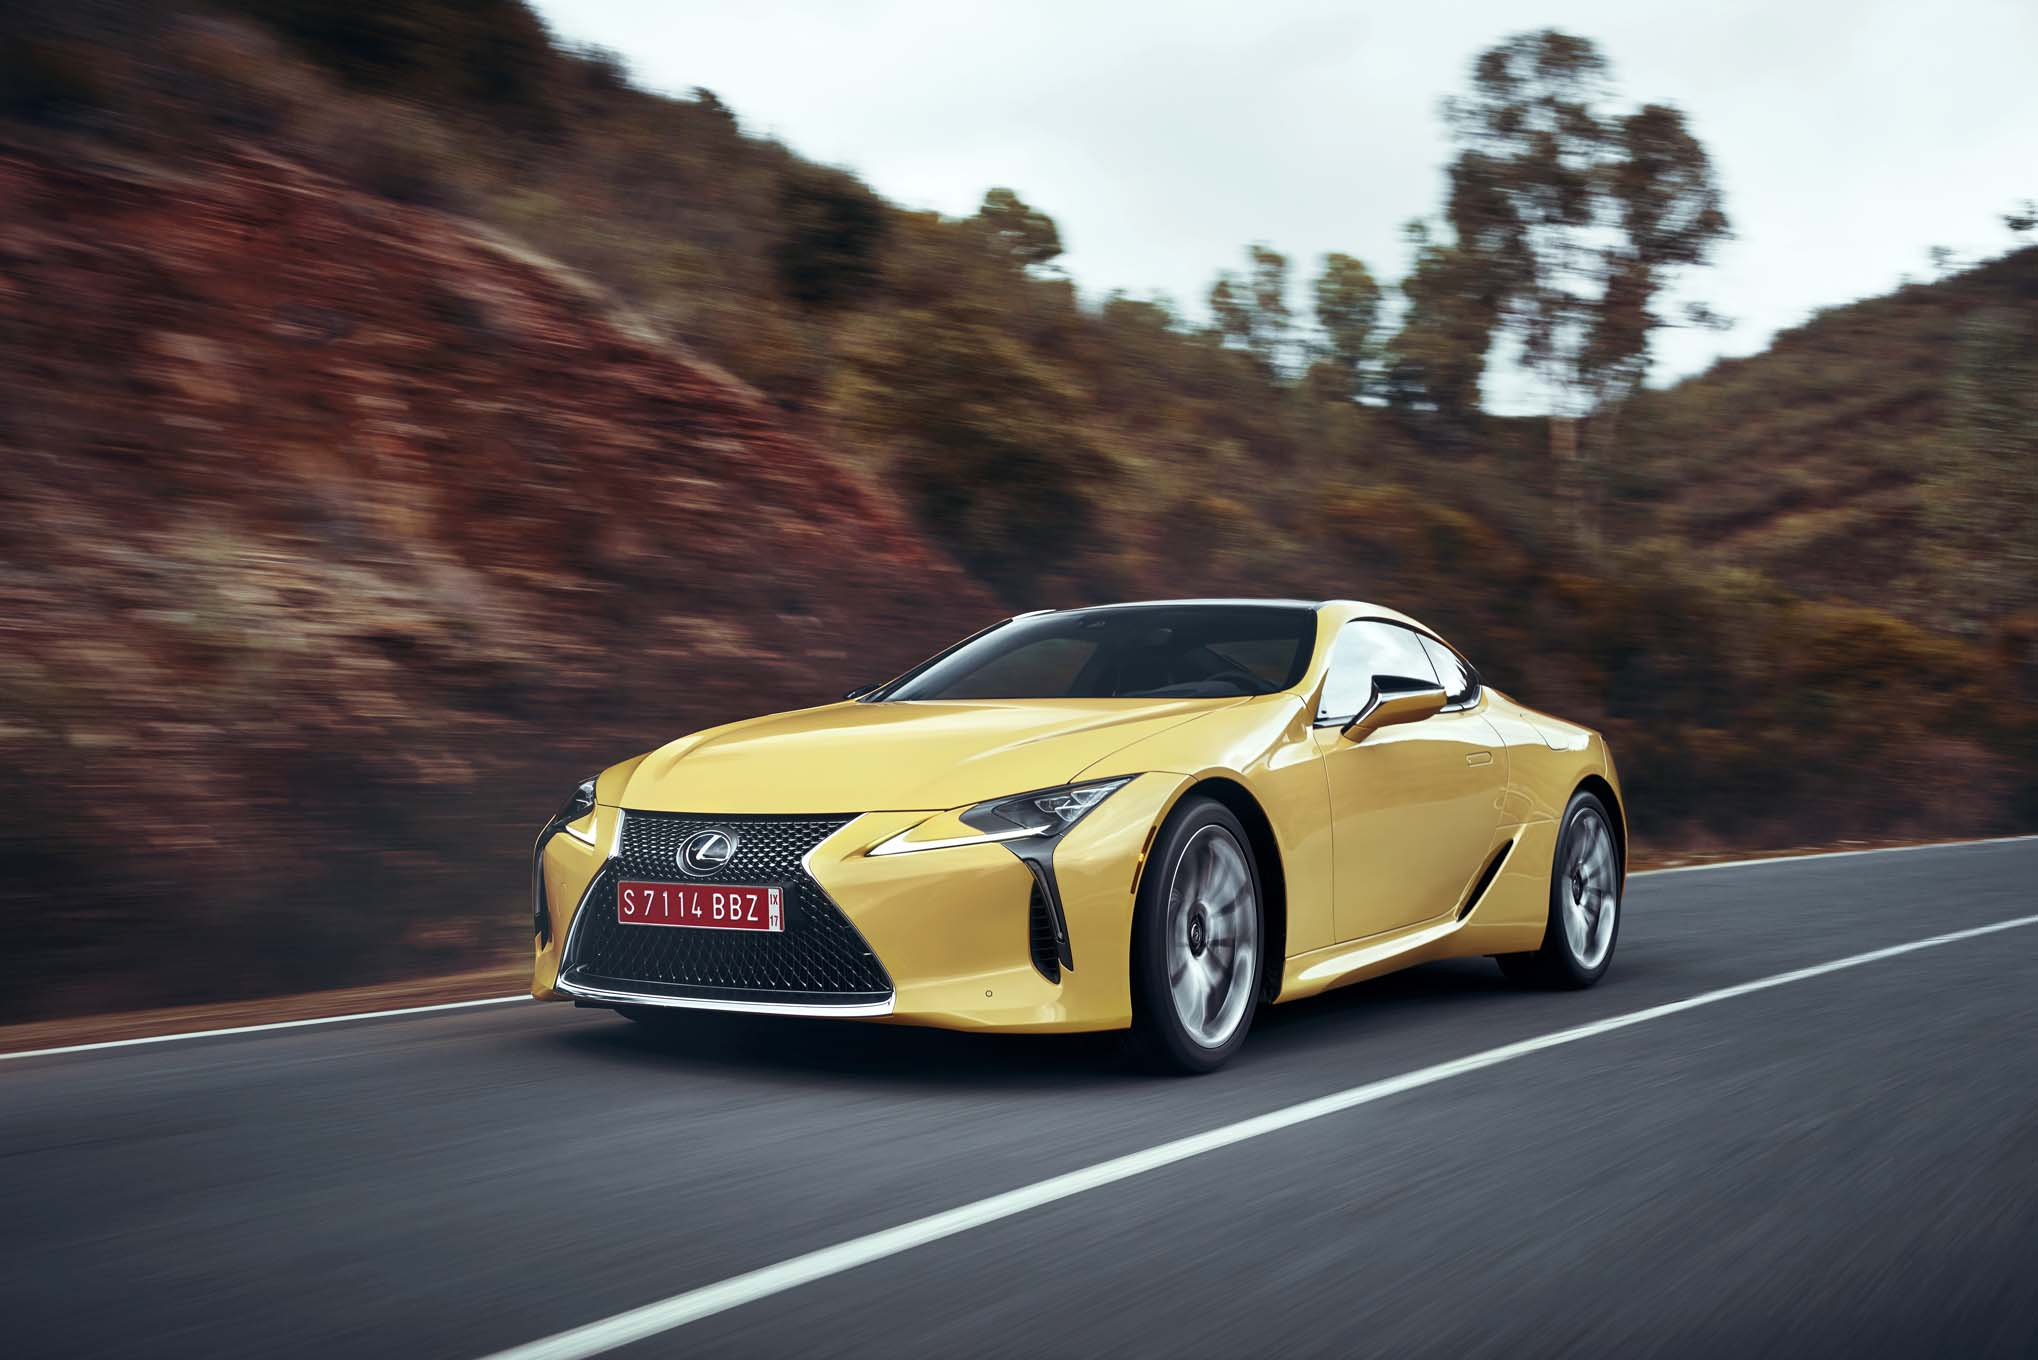 2018 lexus lc. Brilliant 2018 Show More Intended 2018 Lexus Lc